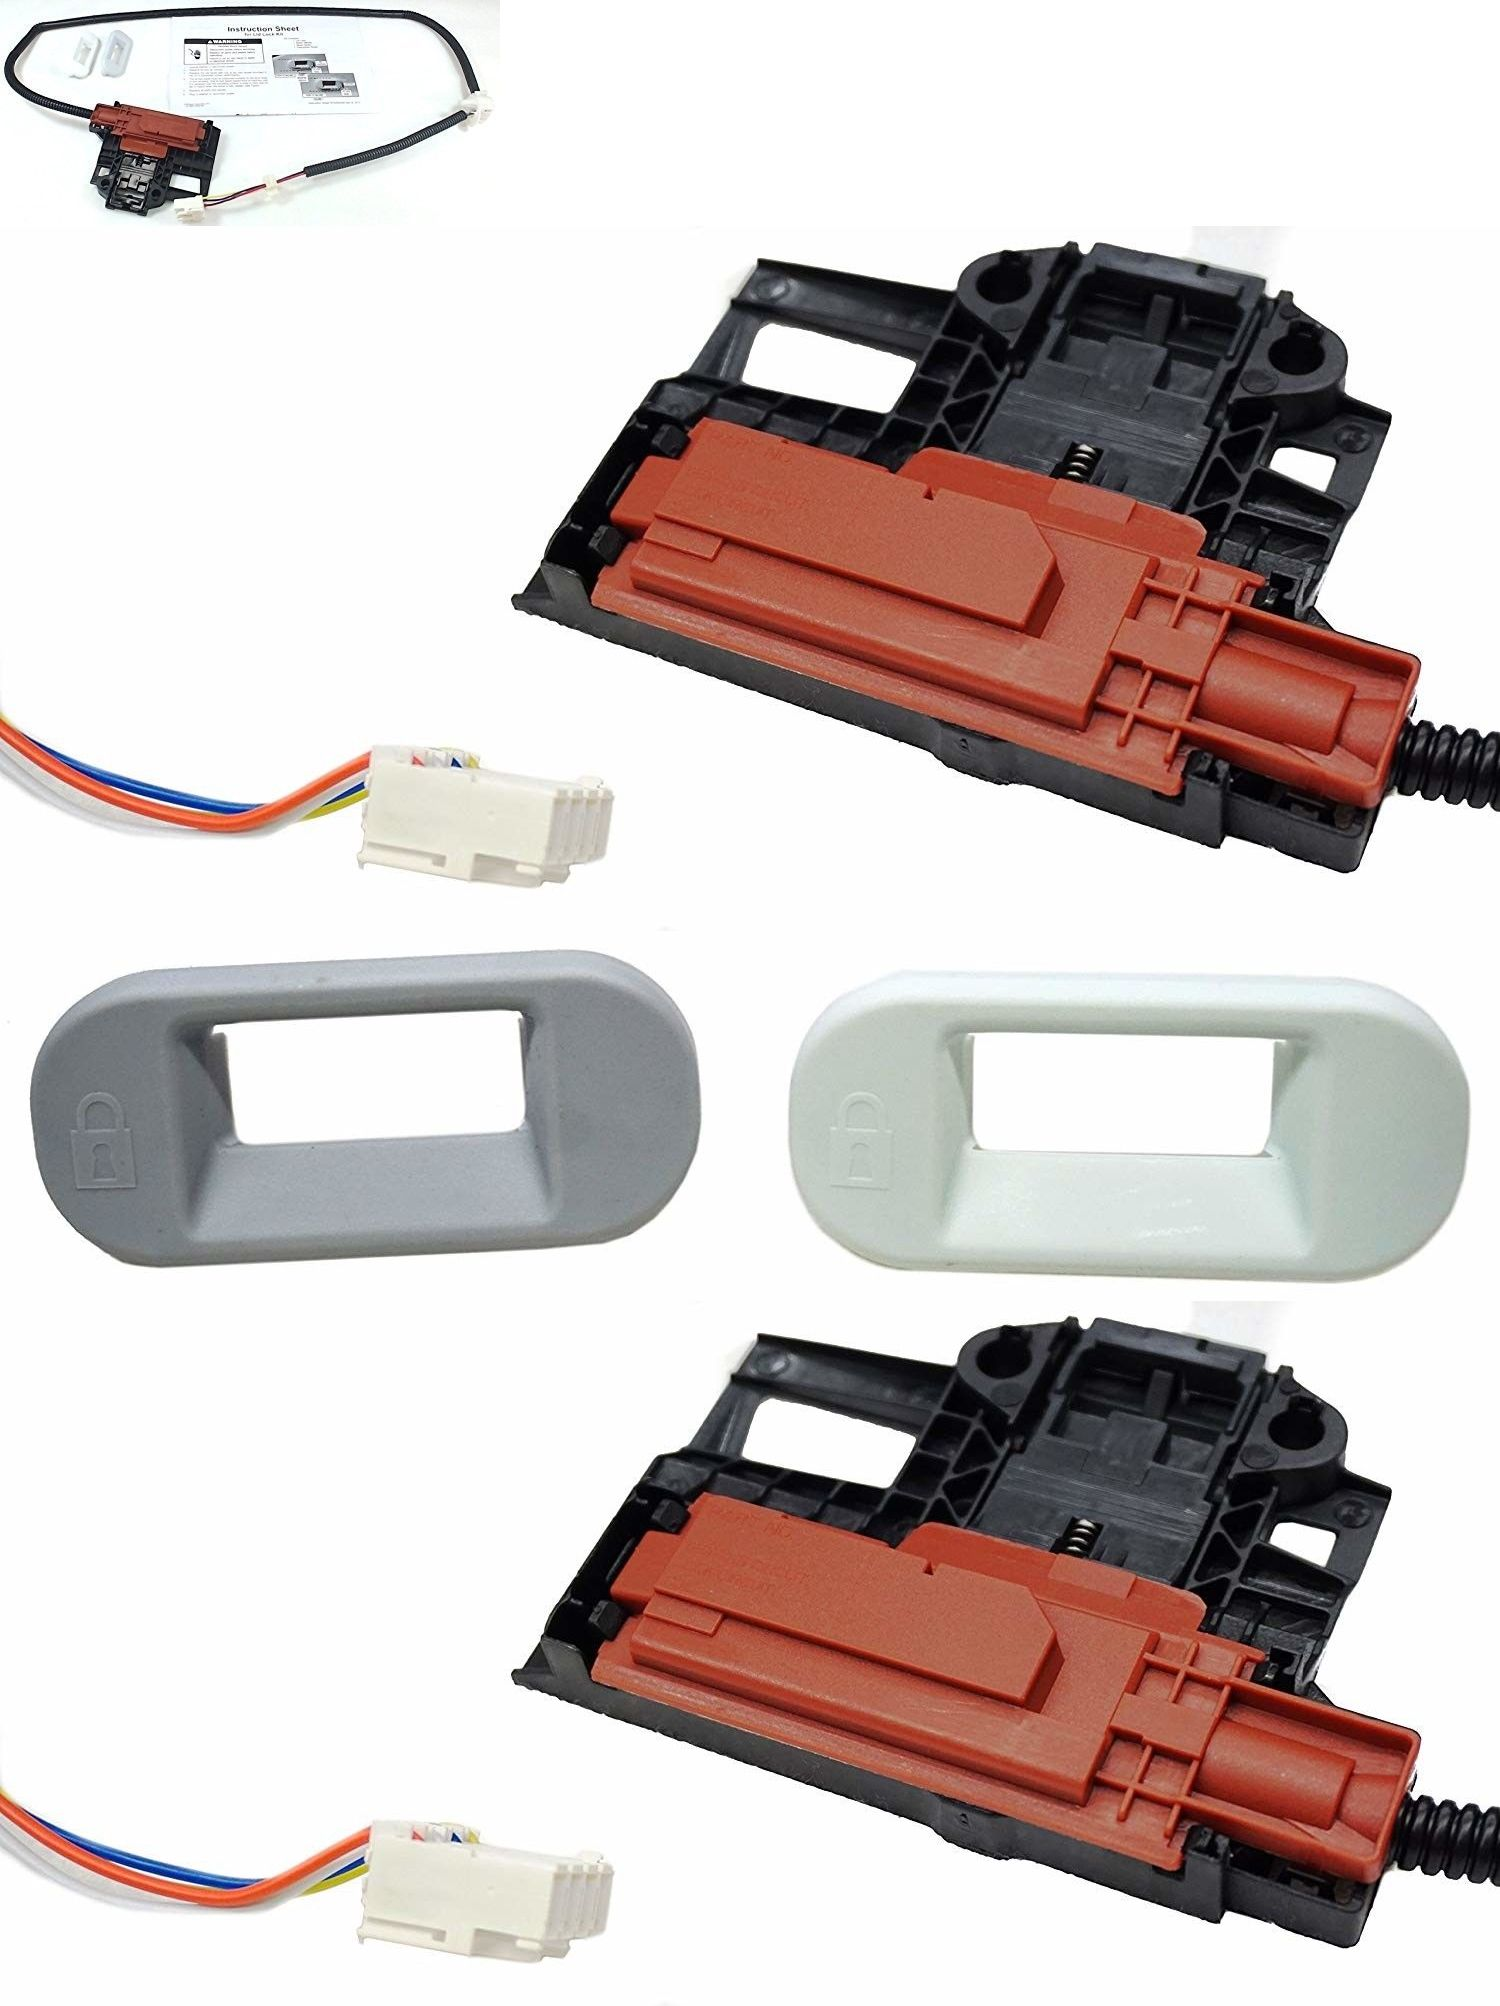 Parts And Accessories 99697 Washer Door Latch Assembly Kit Lid Lock Switch Whirlpool Kenmore Roper Maytag Buy It Now Only 26 55 Door Latch Kenmore Maytag